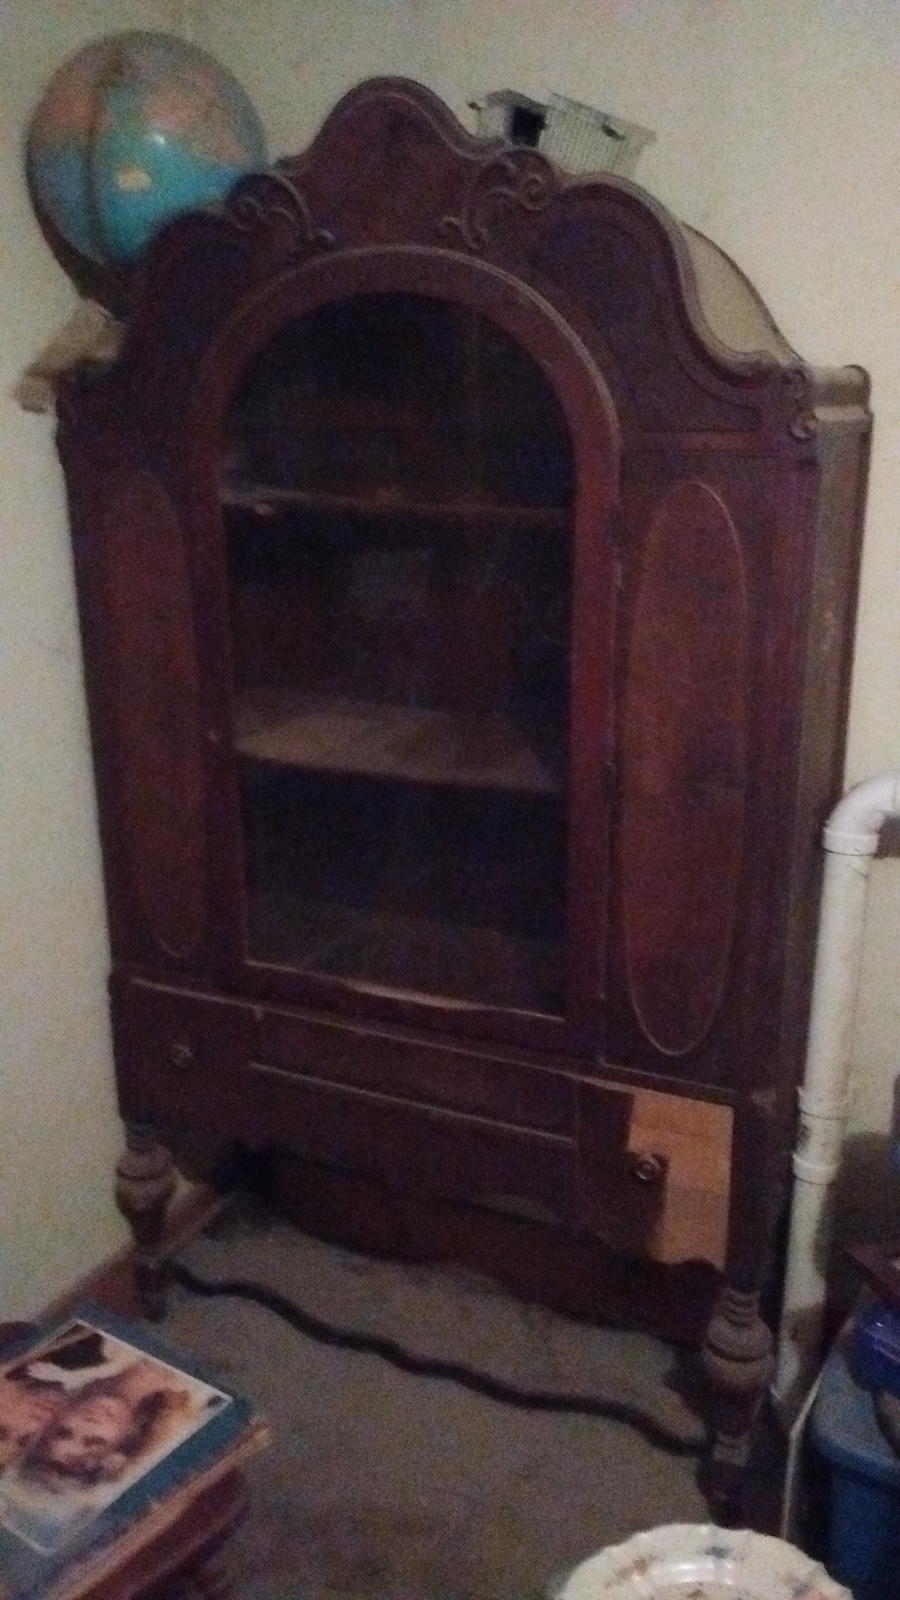 I Ve Had This Reaser Furniture Company Hutch In My